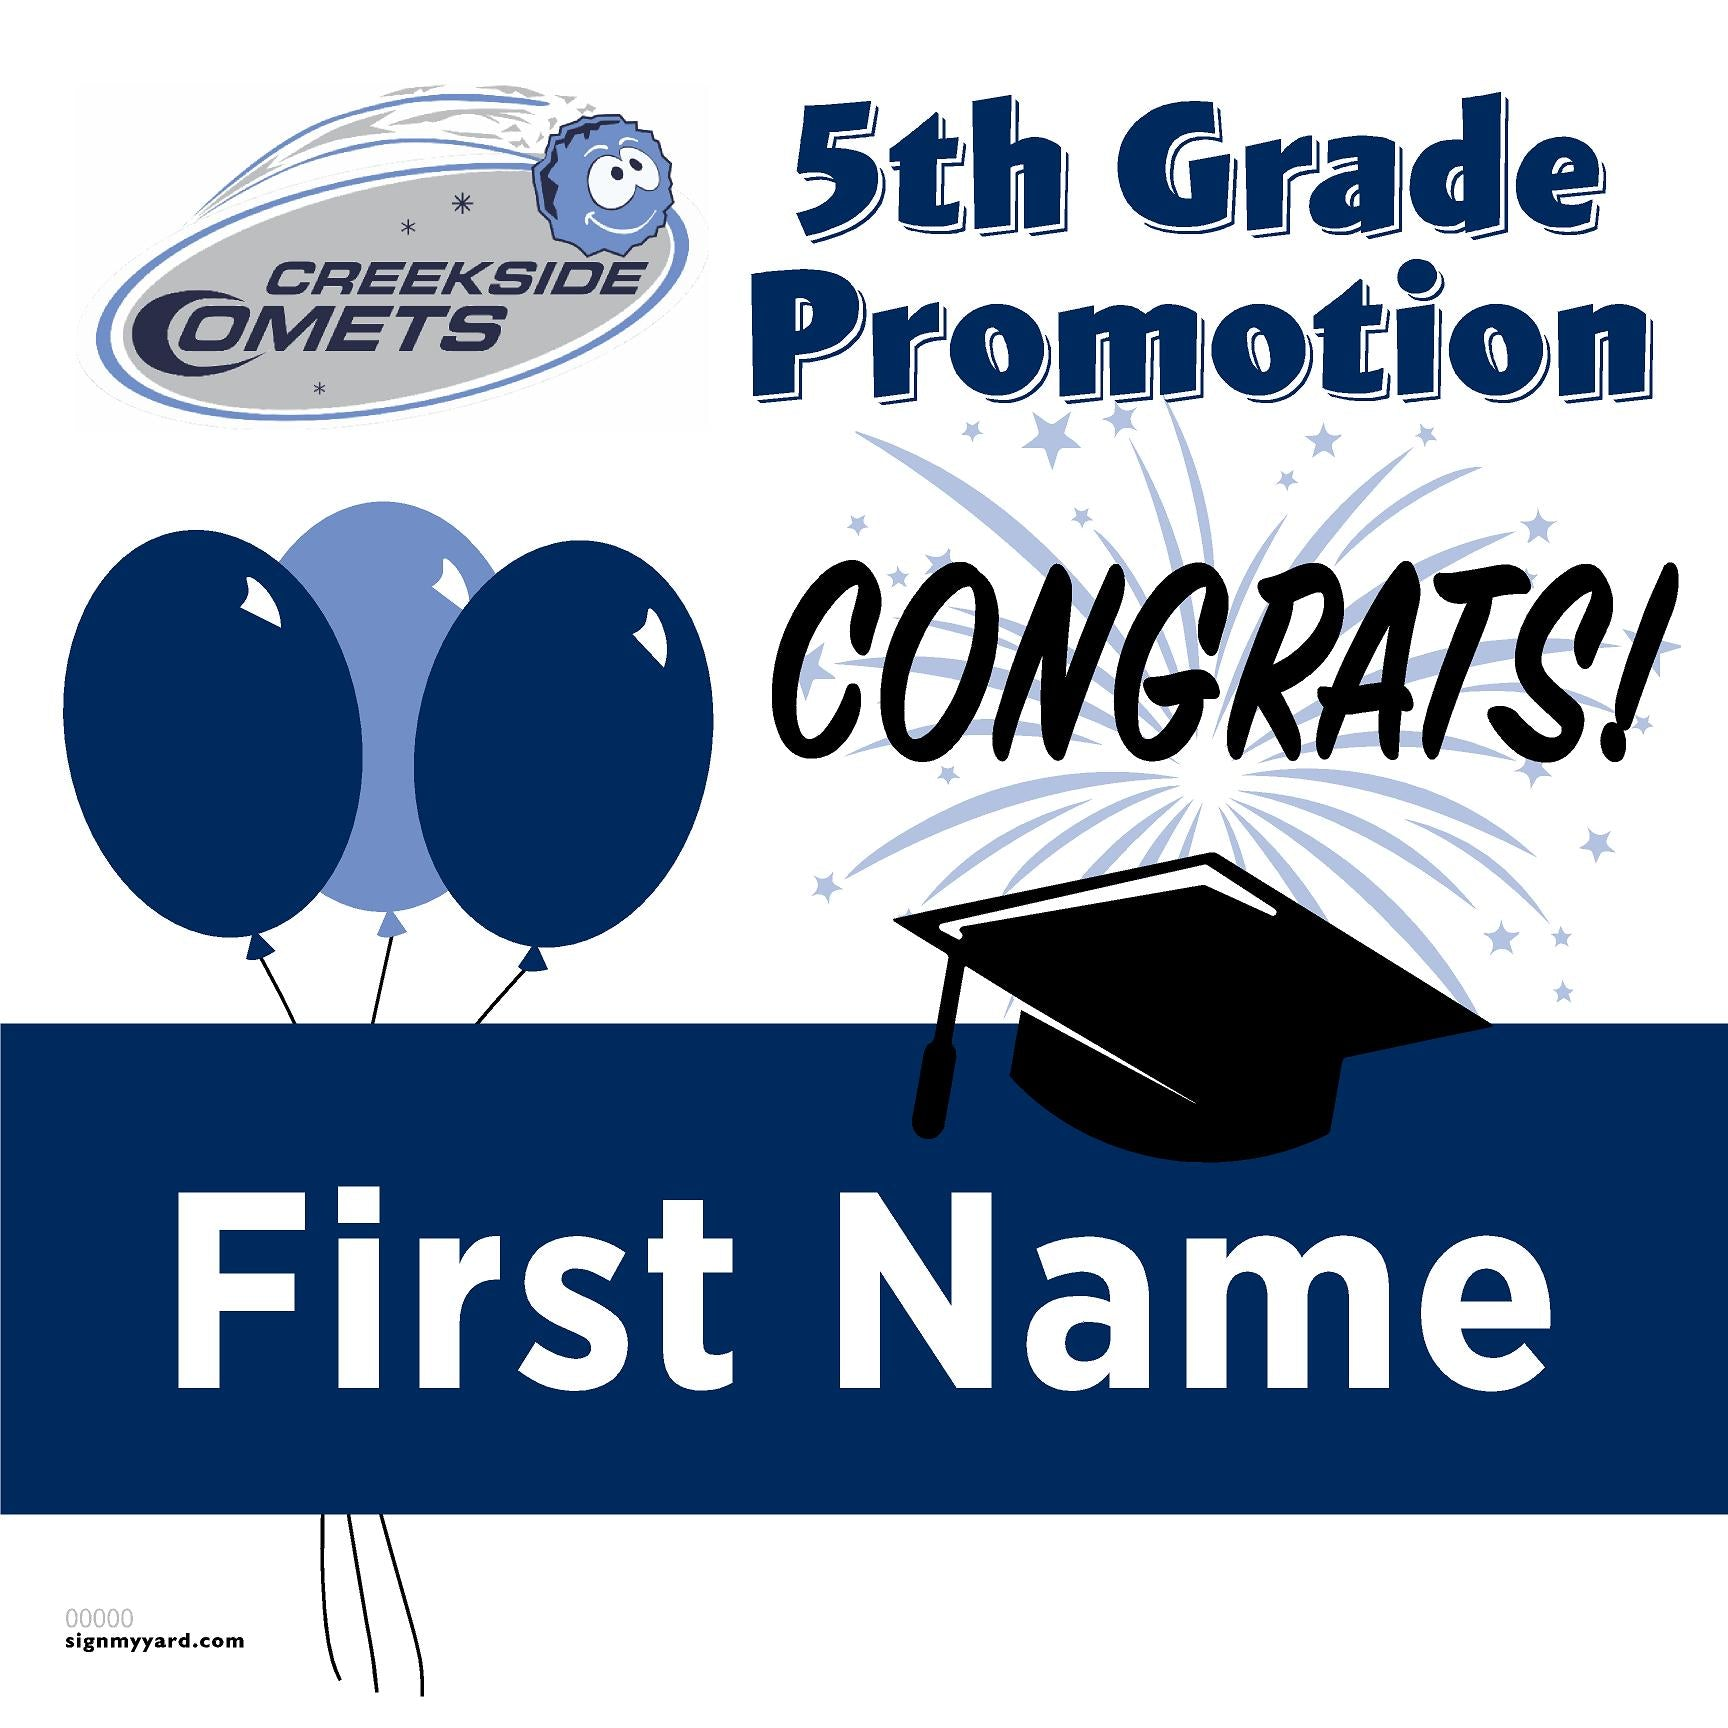 Creekside Elementary School 5th Grade Promotion 24x24 #shineon2027 Yard Sign (Option A)